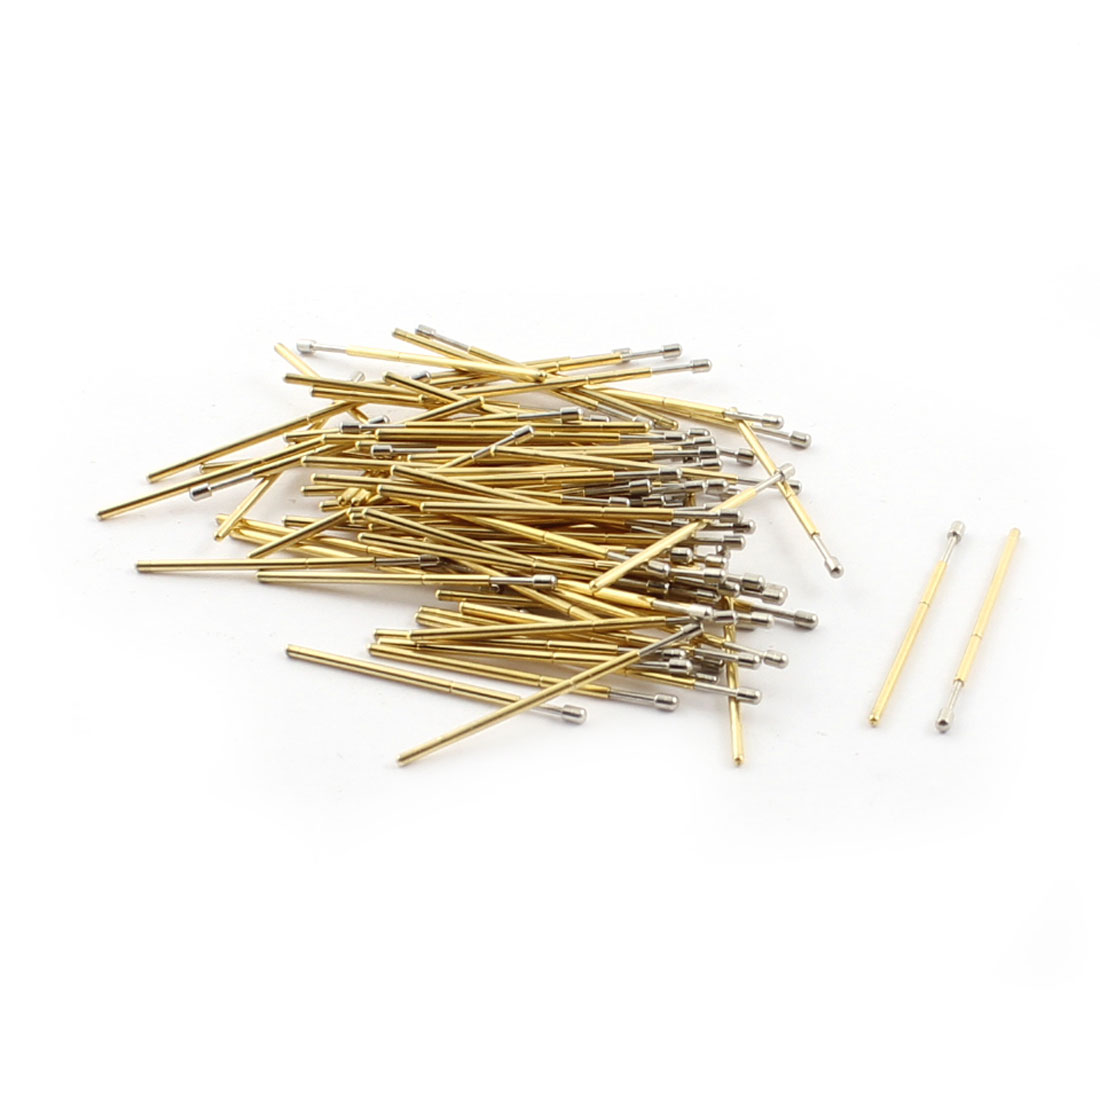 100 Pcs PM75-D 1.3mm Dia Round Spherical Tip 28mm Metal Spring Loaded Test Probes Testing Pins for PCB Board